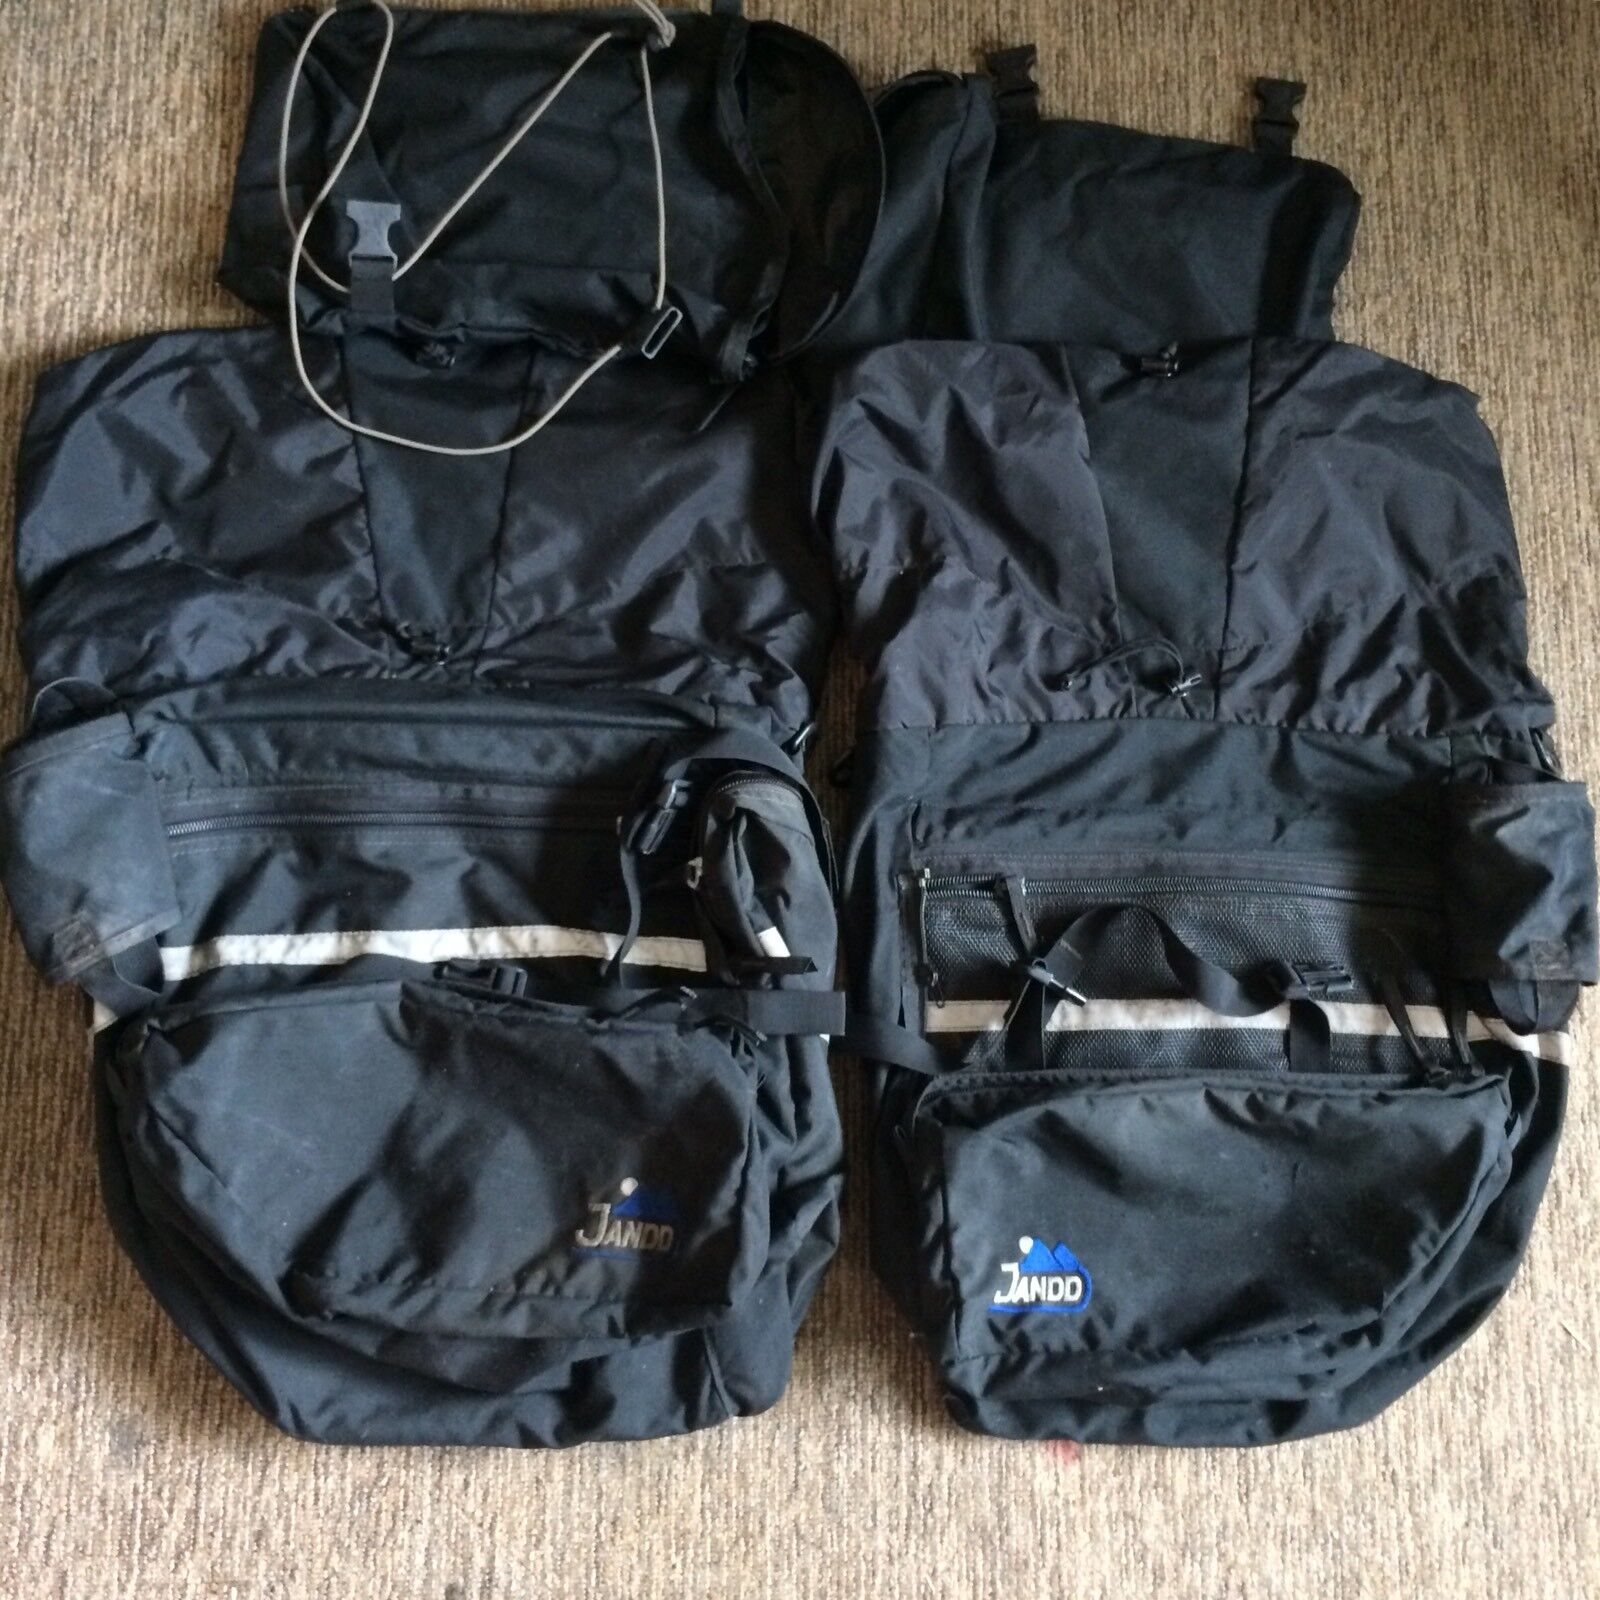 JANDD Pair Of Large Mountain Expedition Panniers Biking Hiking Camping FMEP